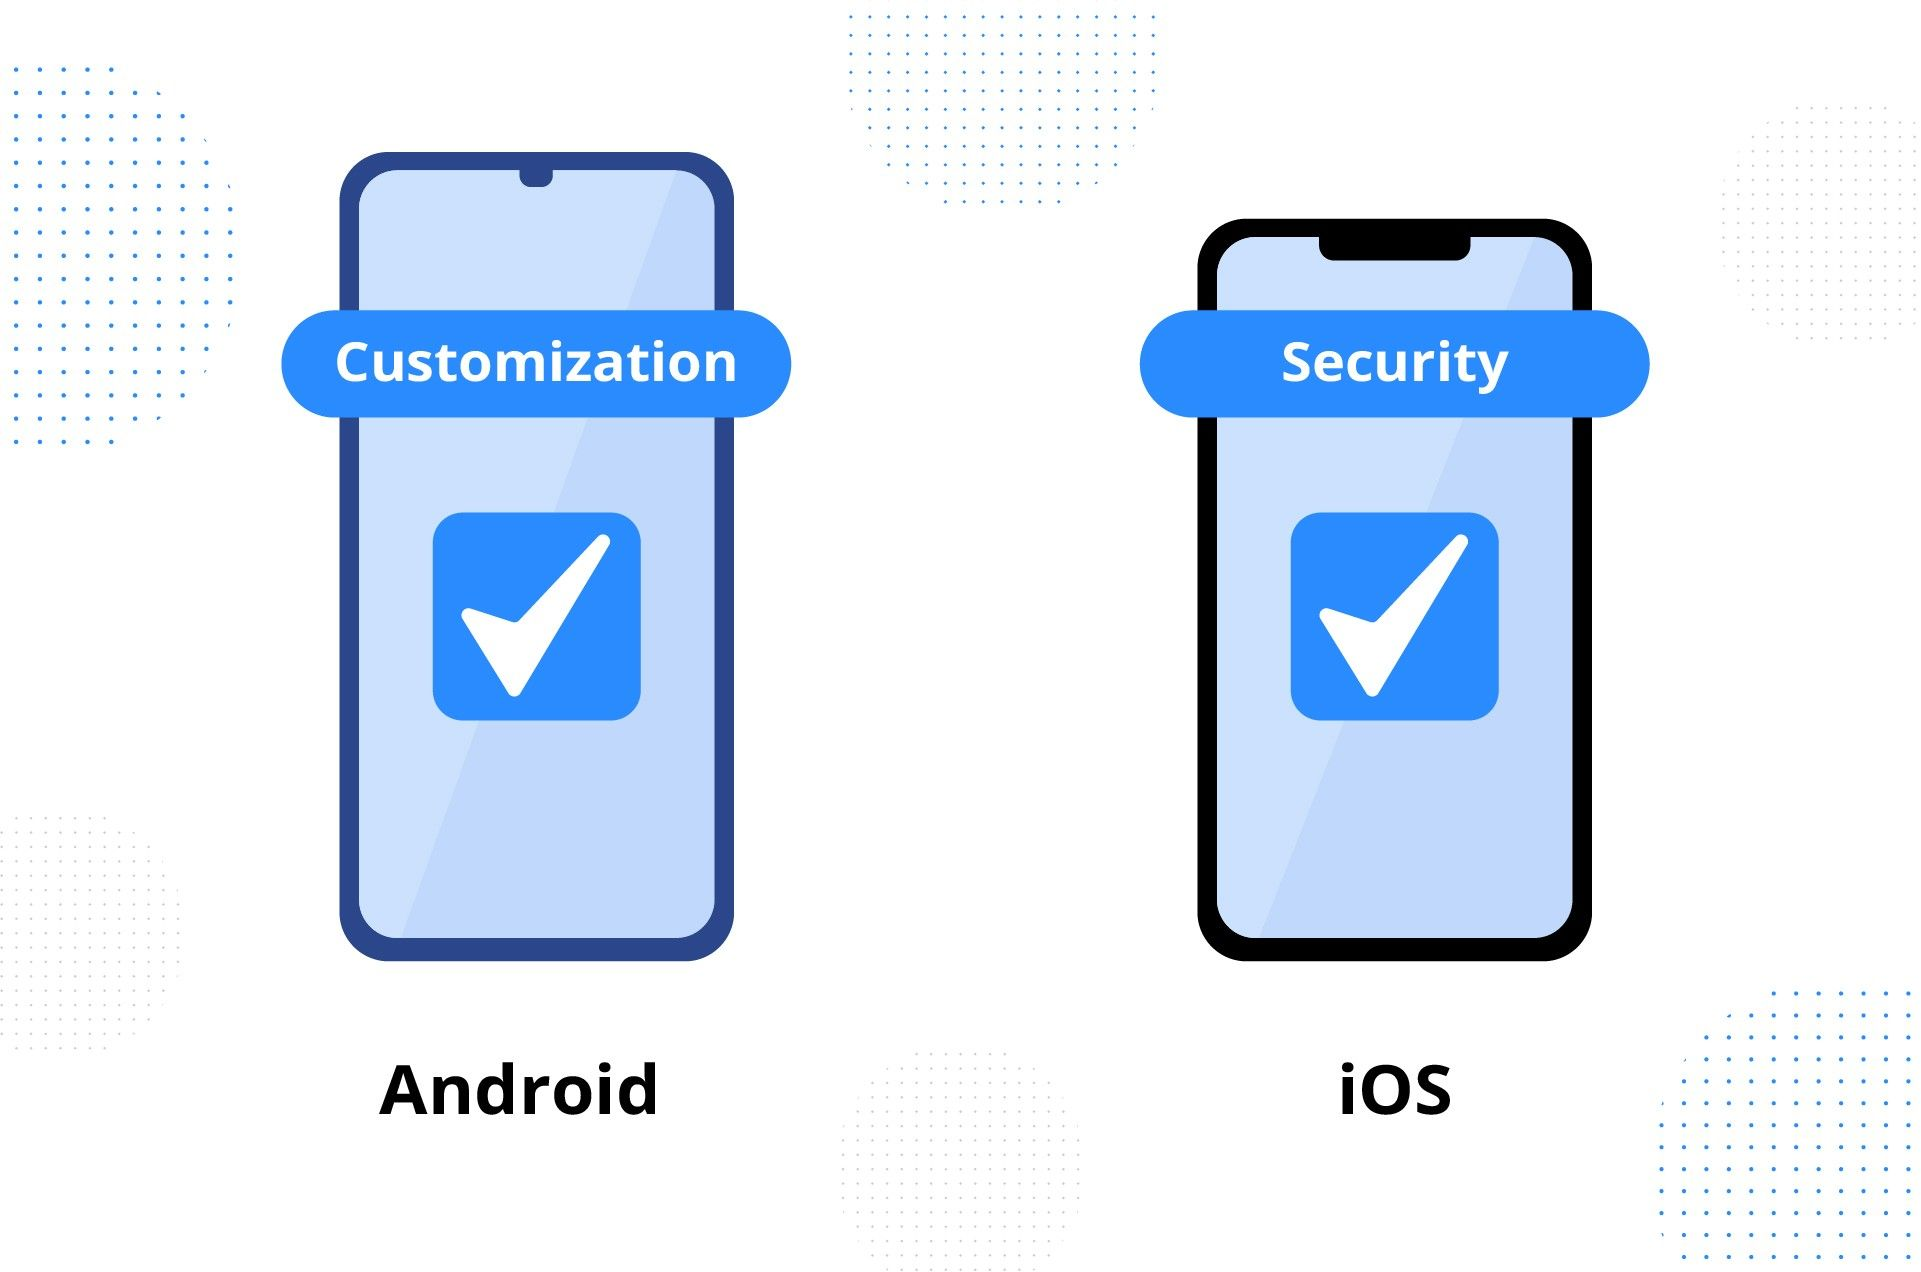 iOS vs Android customization and security